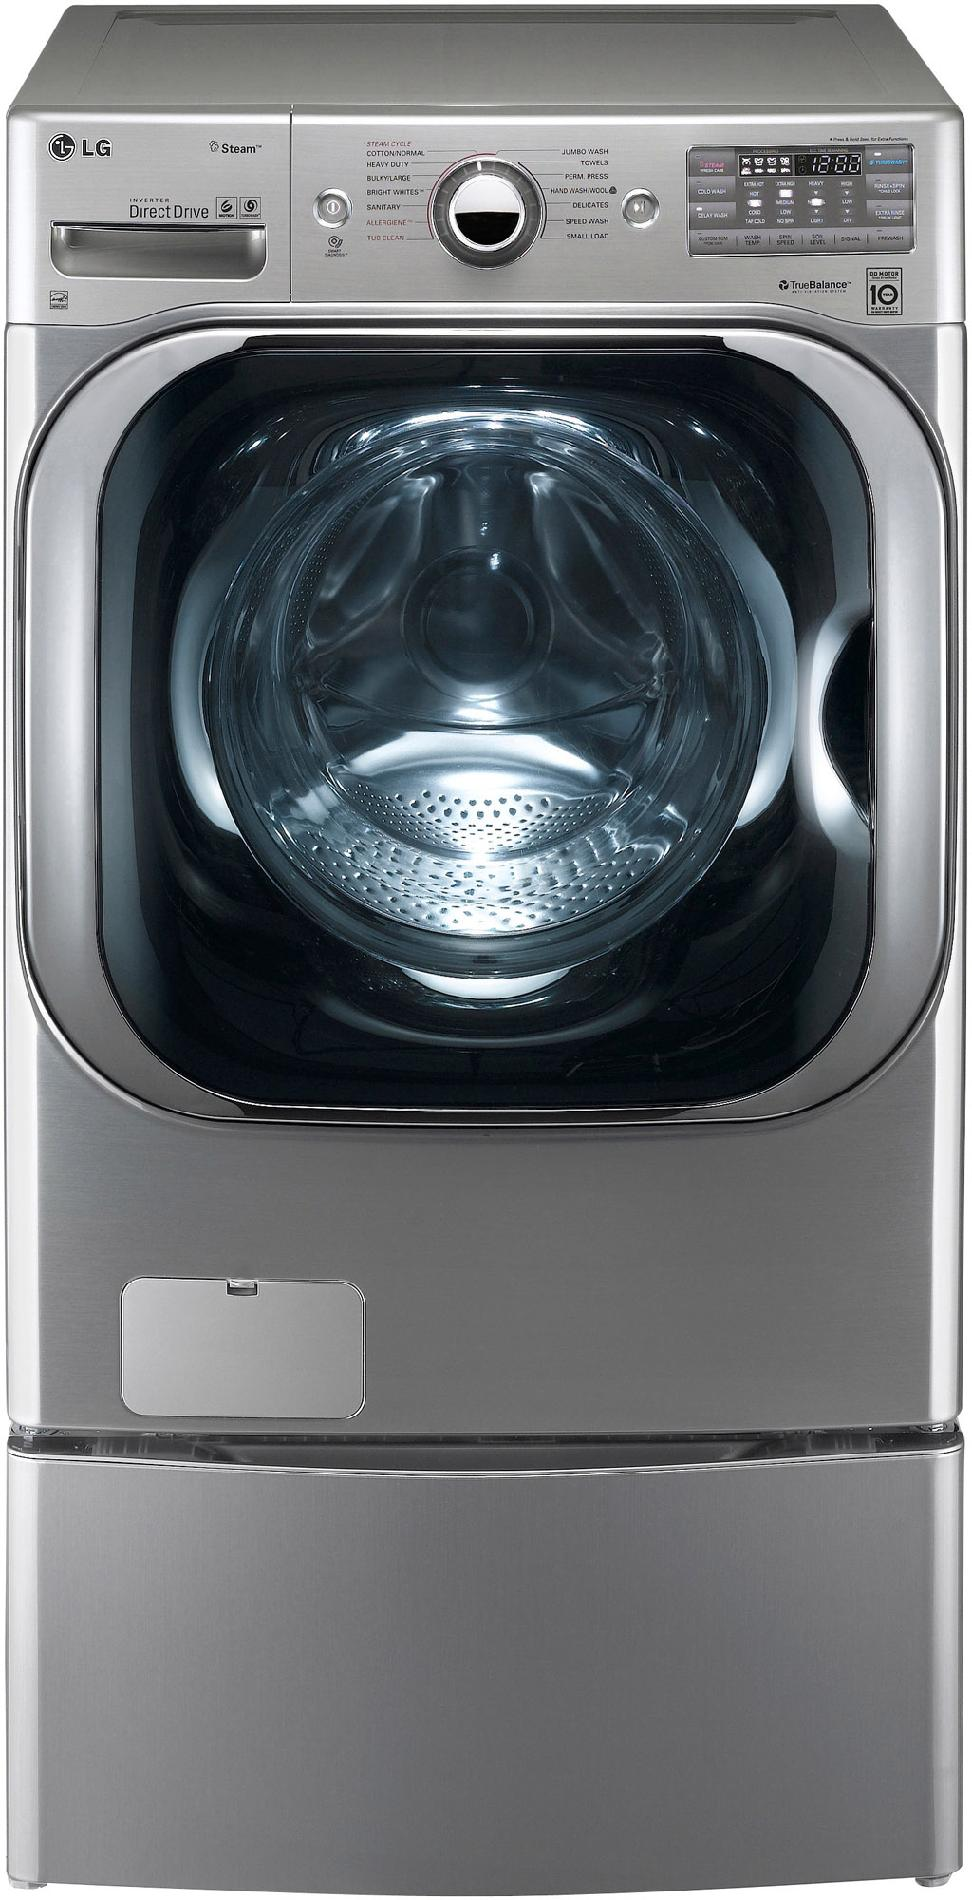 LG 5.2 cu. ft. Mega-Capacity Steam Front-Load Washer  - Graphite Steel